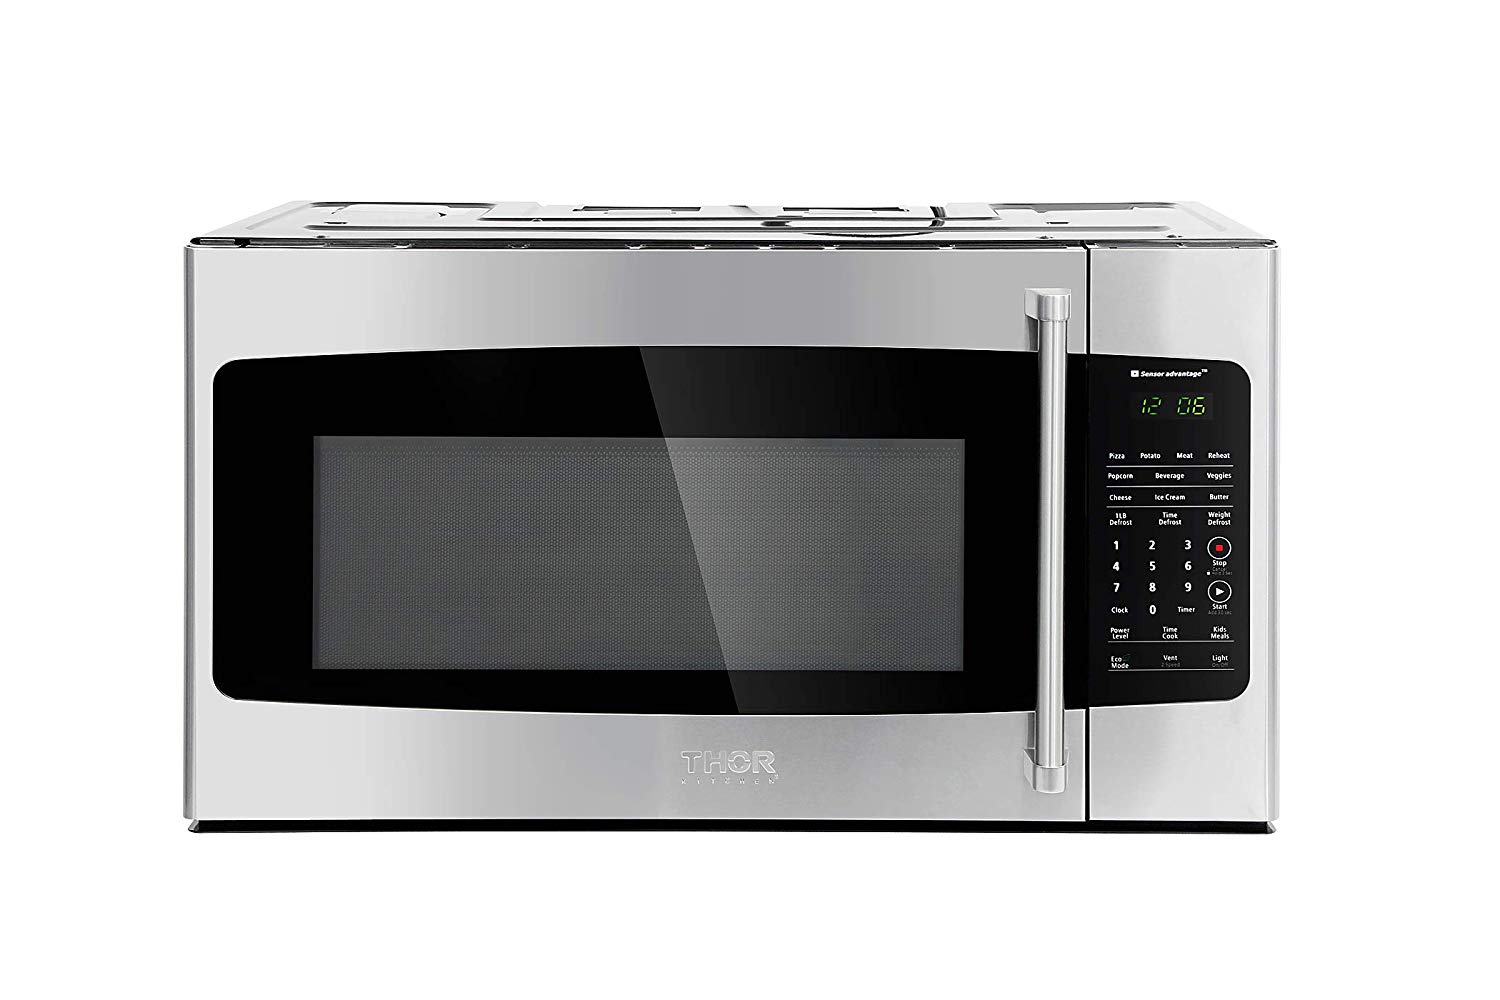 Thor Kitchen Appliance 30 in. W 1.7 cu. ft Over the Range Microwave in Stainless Steel with Sensor Cooking OTR, Eco Mode, Clock Timer and 1000 Watts of Cooking Power